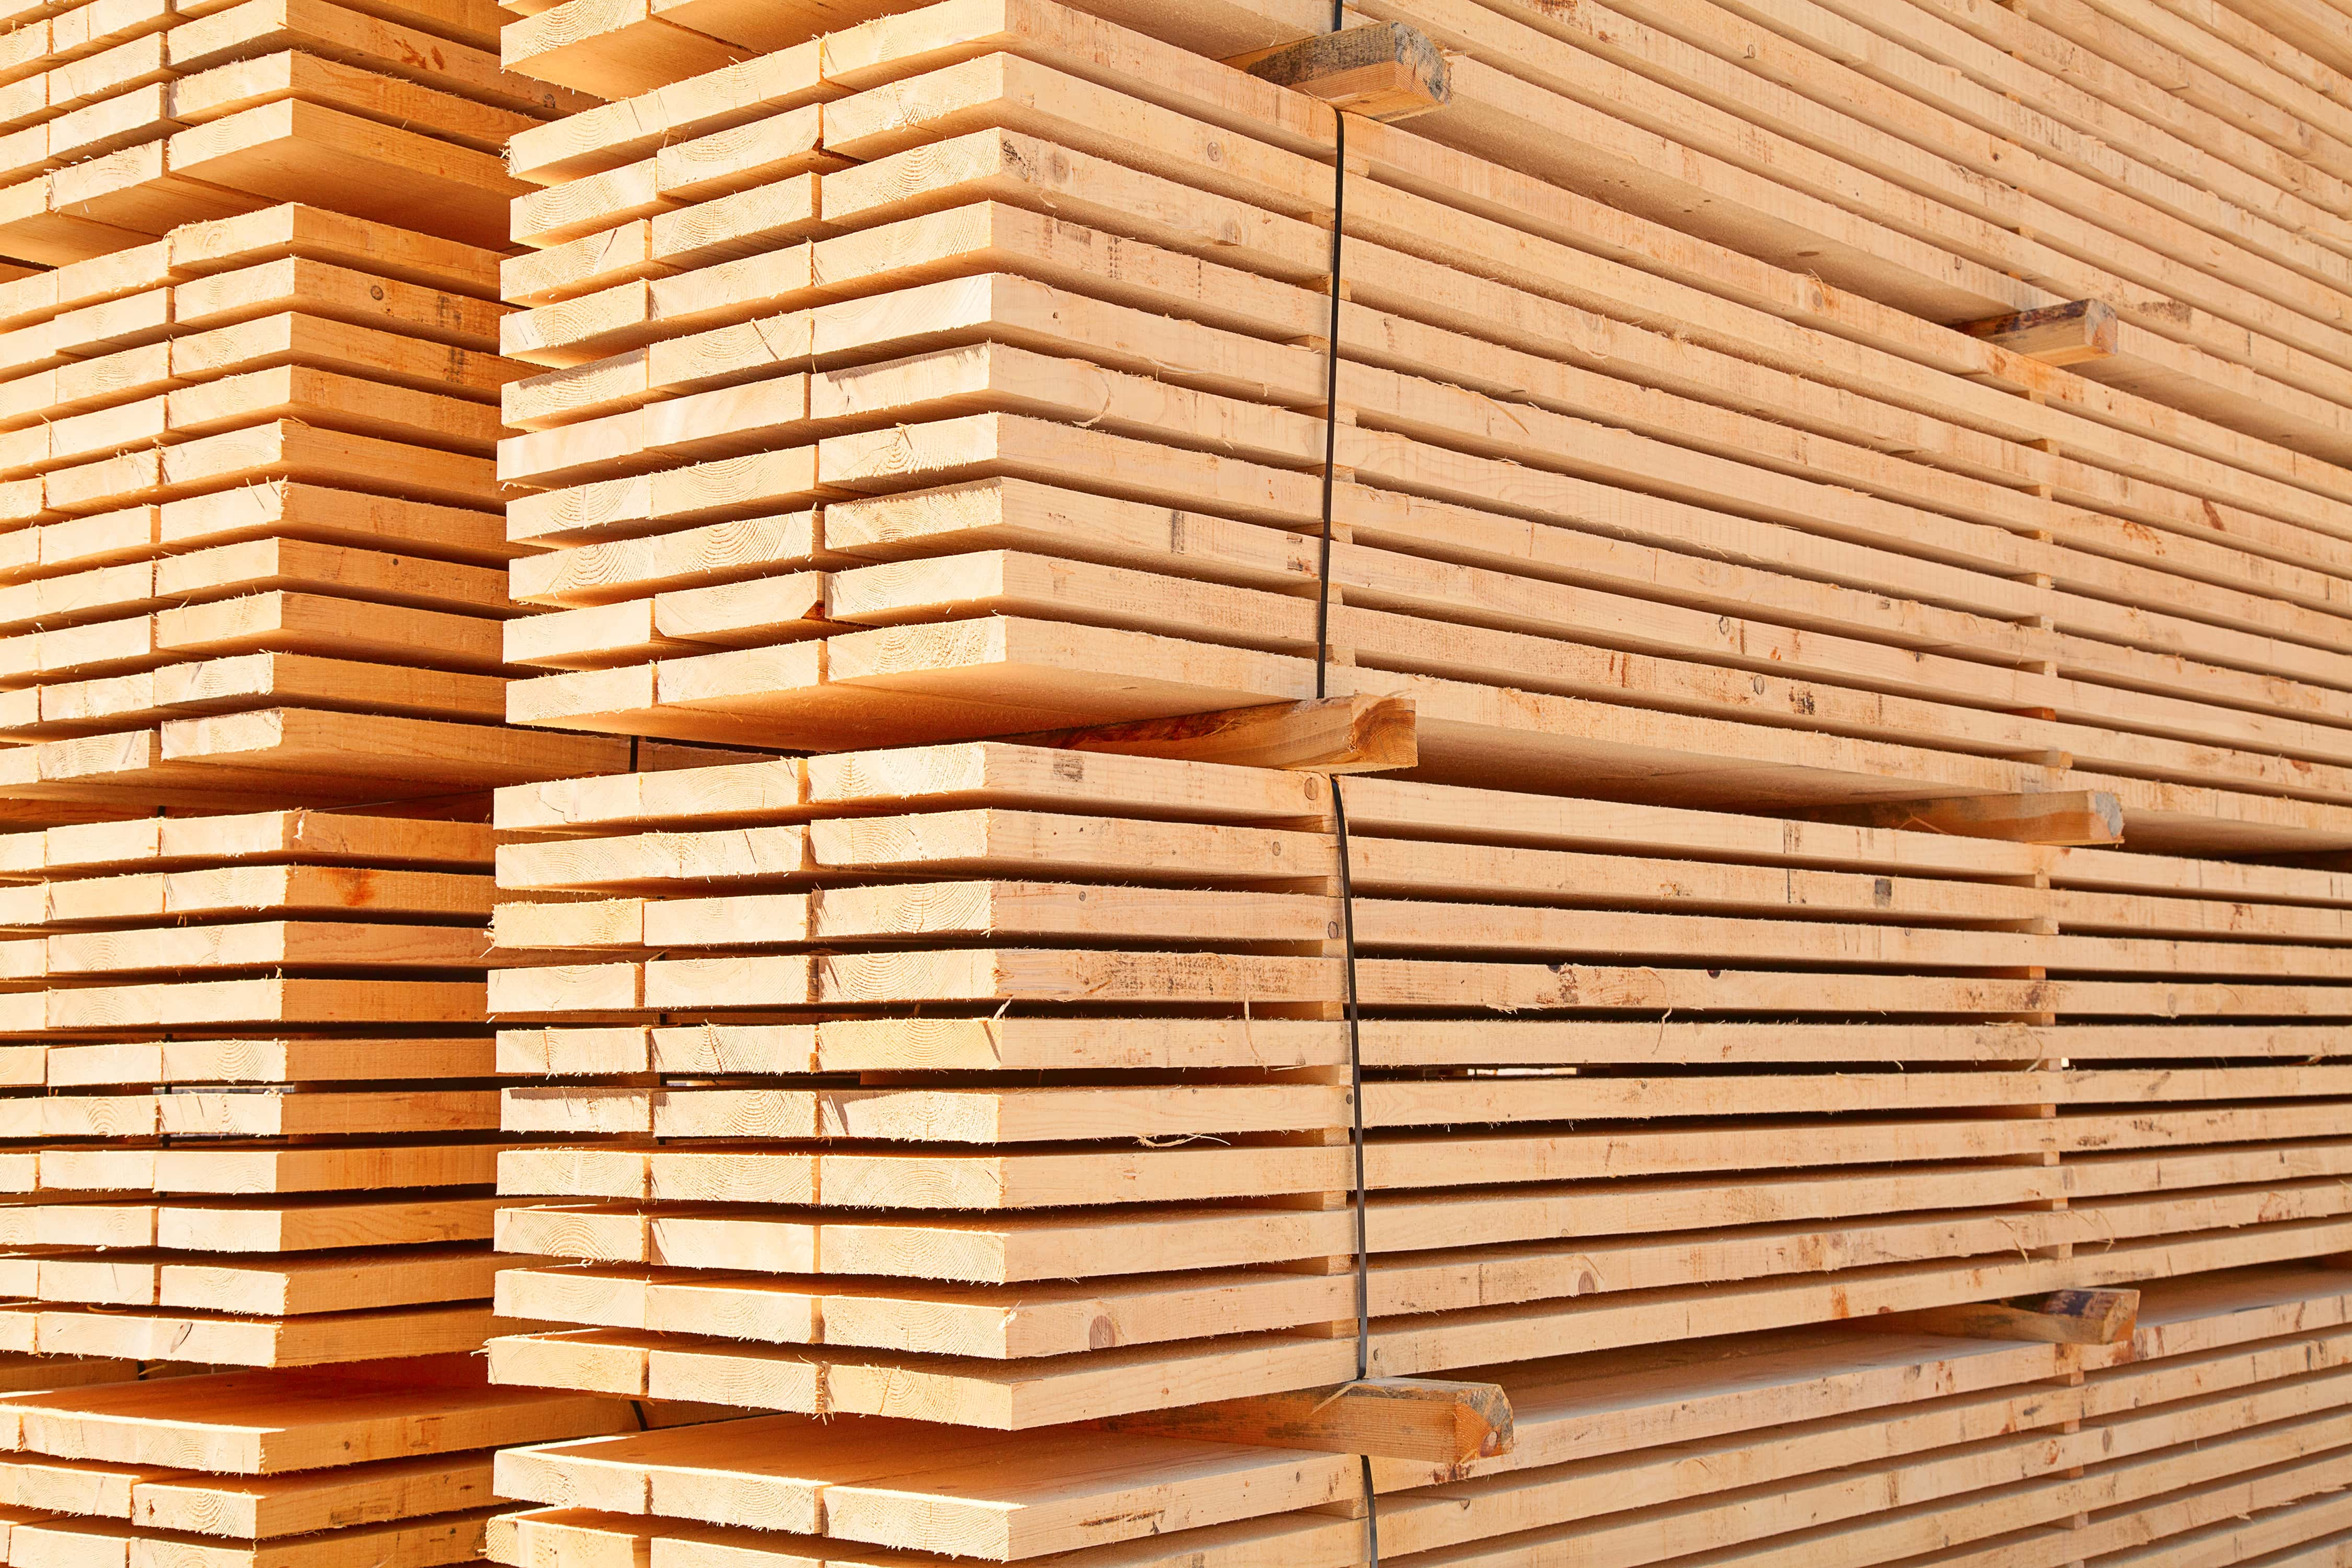 Construction timber